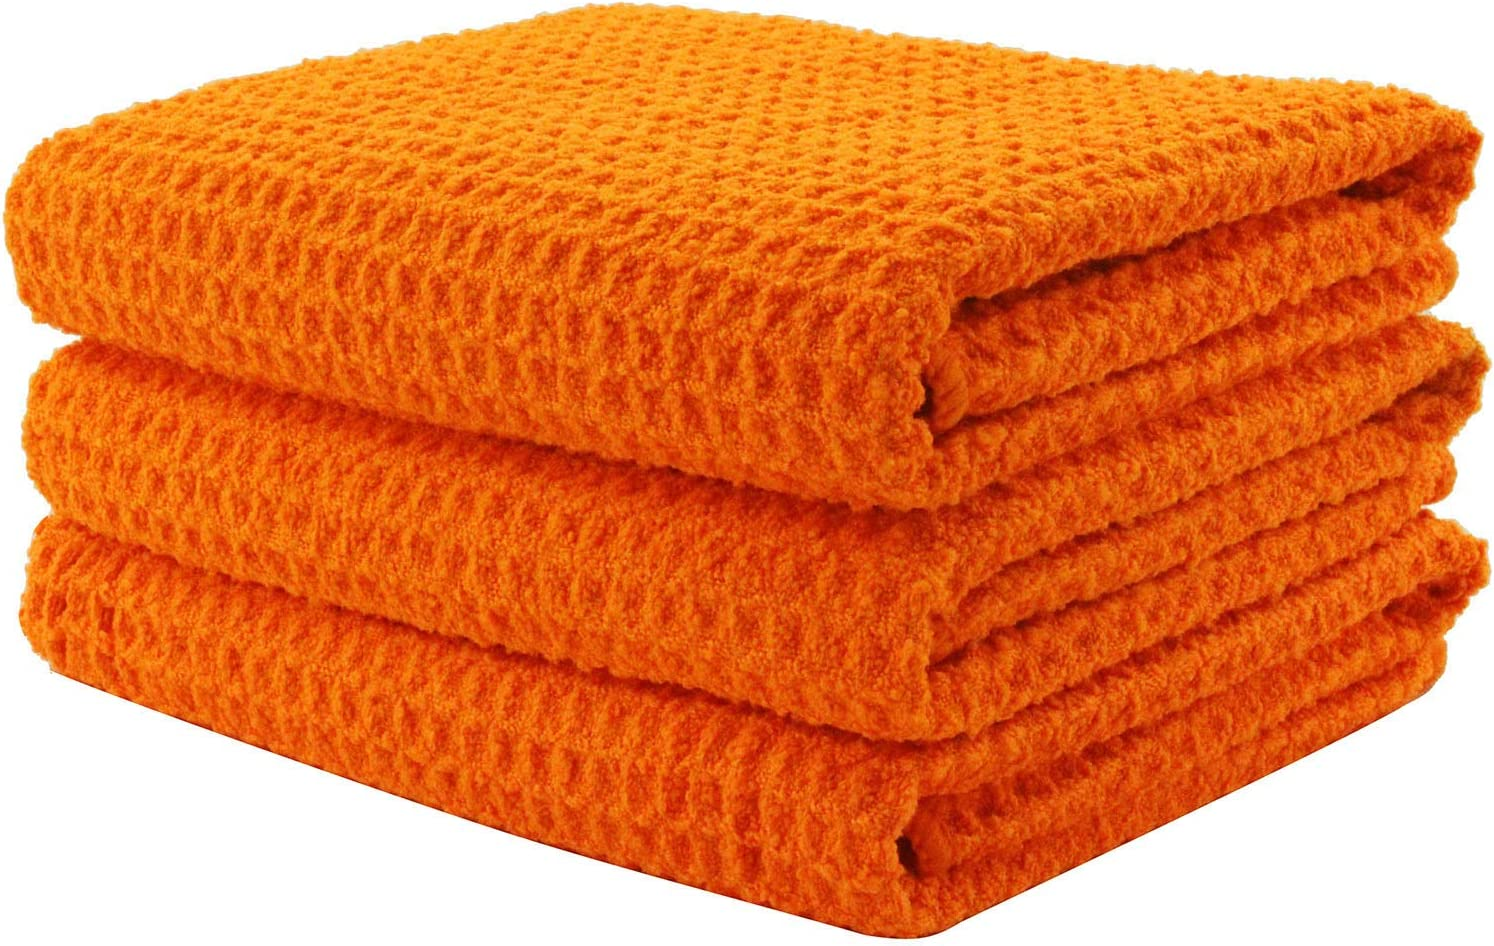 Aniease Microfiber Kitchen Towel, Super Absorbent Fast Drying Waffle Weave Dishcloths, Dish Drying Towels, Set of 3 Cleaning Cloths Hand Towels